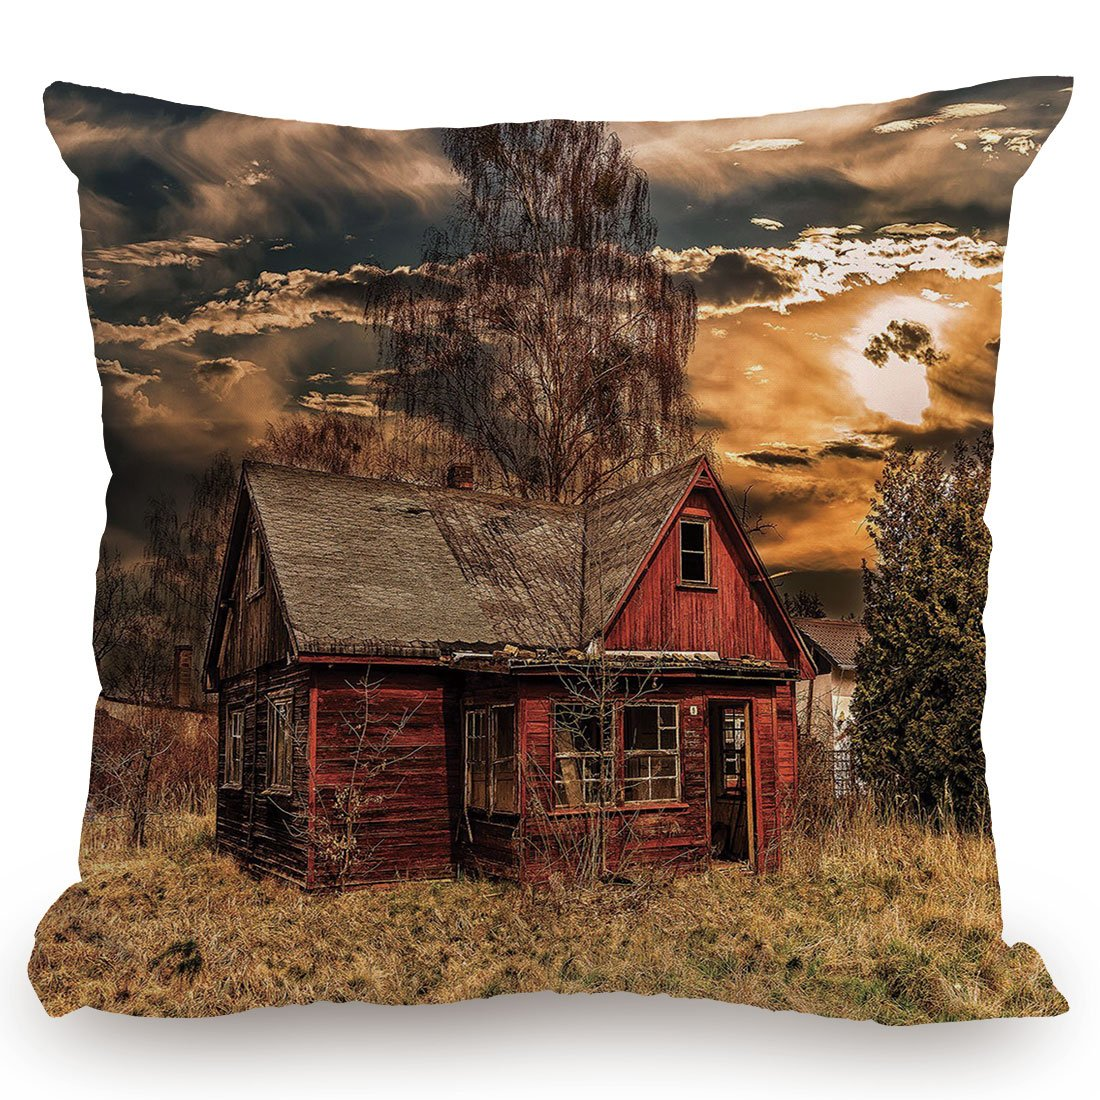 KissCase Throw Pillow Cushion Cover,Scenery Decor,Scary Horror Movie Themed Abandoned House in Pale Grass Garden Sunset Photo,Multicolor,Decorative Square Accent Pillow Case